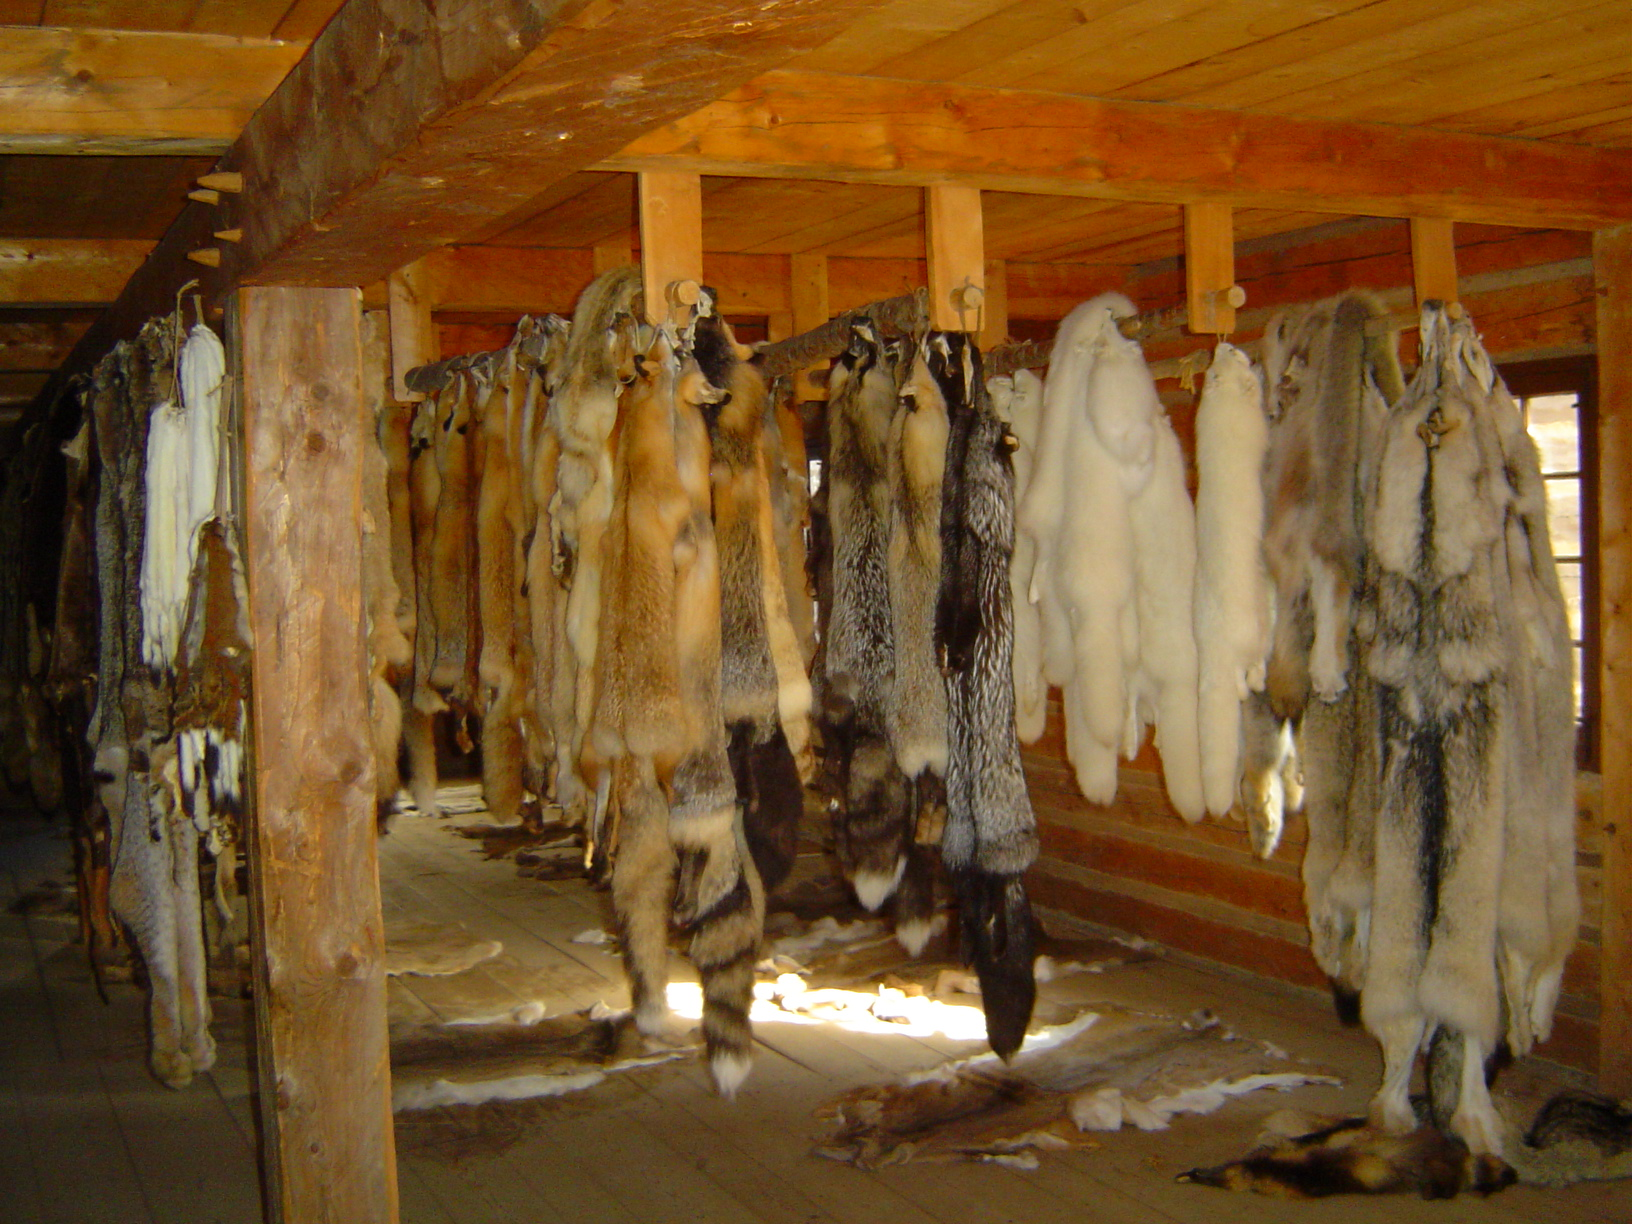 File furs inside fur stores jpg wikimedia commons for Stor fur gartenteich